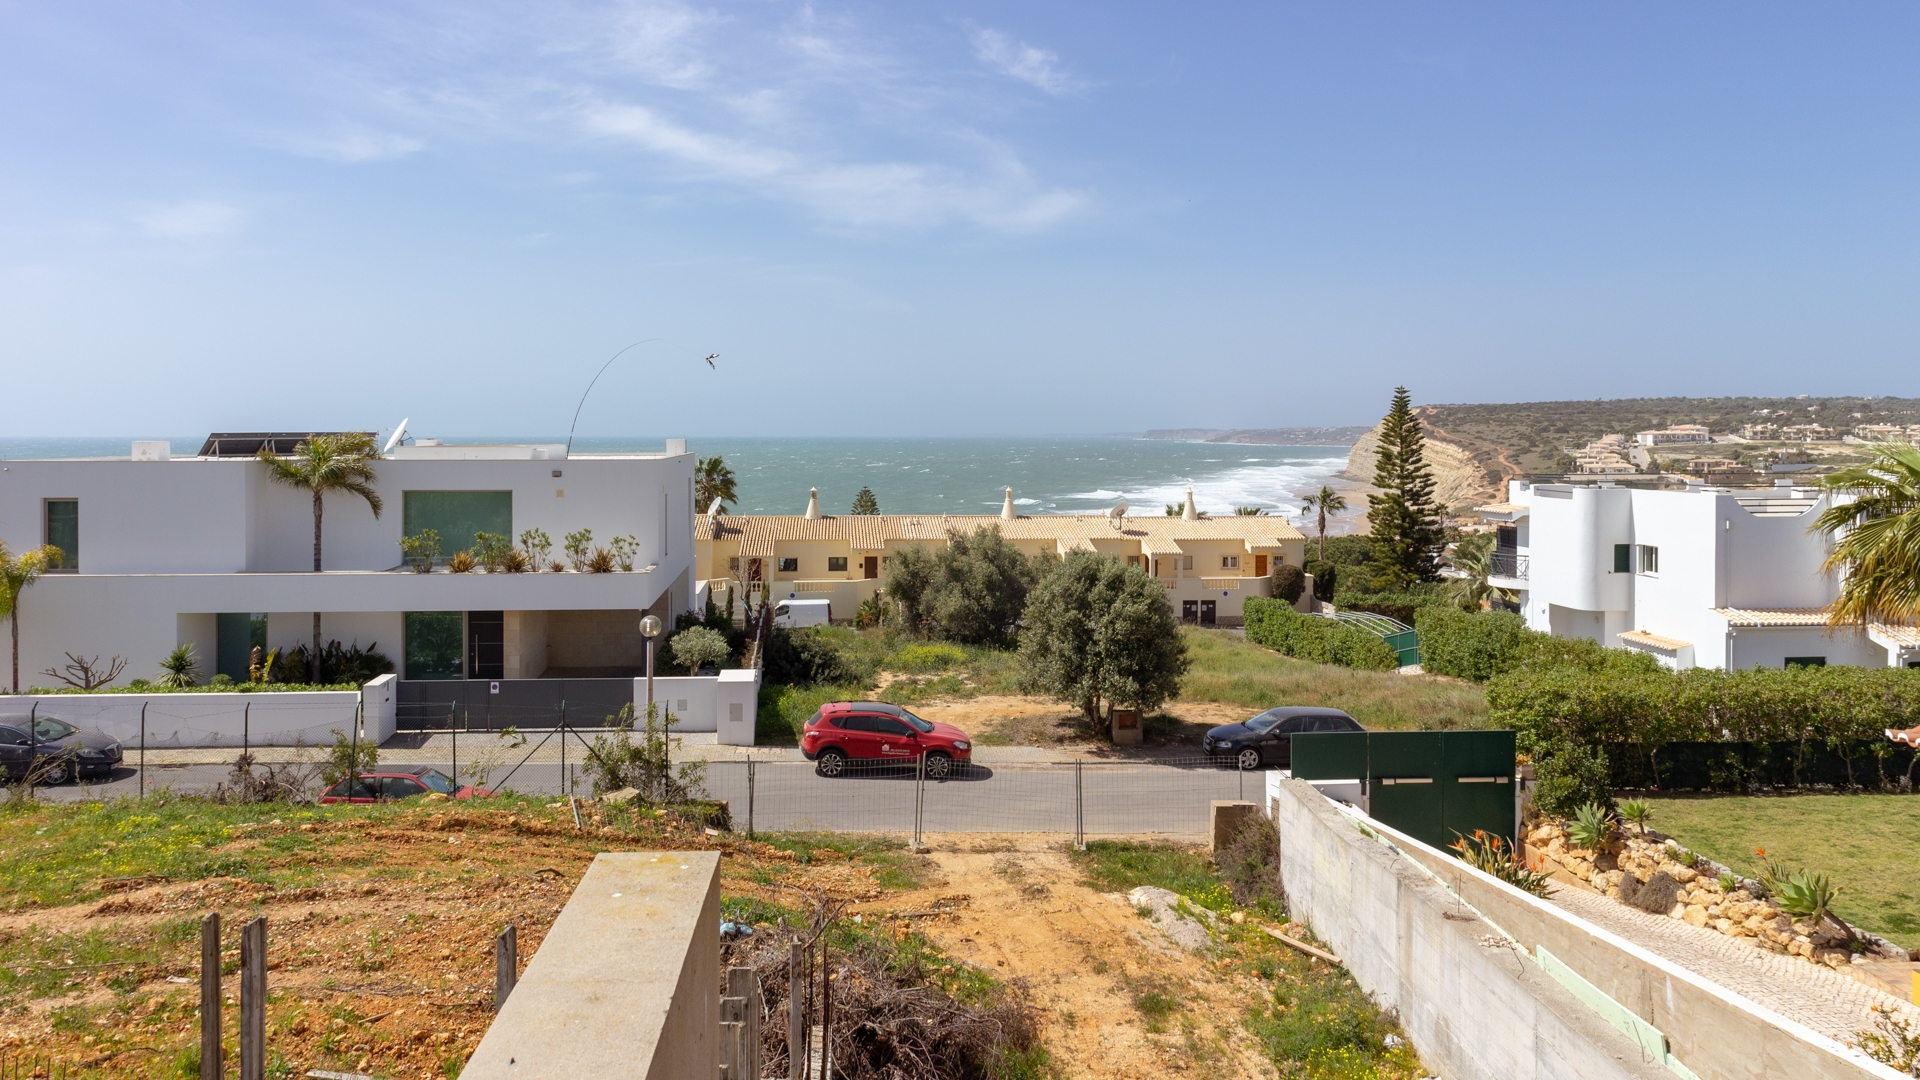 Partly constructed luxury 4 bedroom 3 storey villa with sea view in Porto de Mós, Lagos | LG1415 Luxury villa with 4 en-suite bedrooms, laundry and gym, separate living and dining room. Sea views. Two car garage and further outdoor parking, in Porto de Mós, near Lagos.